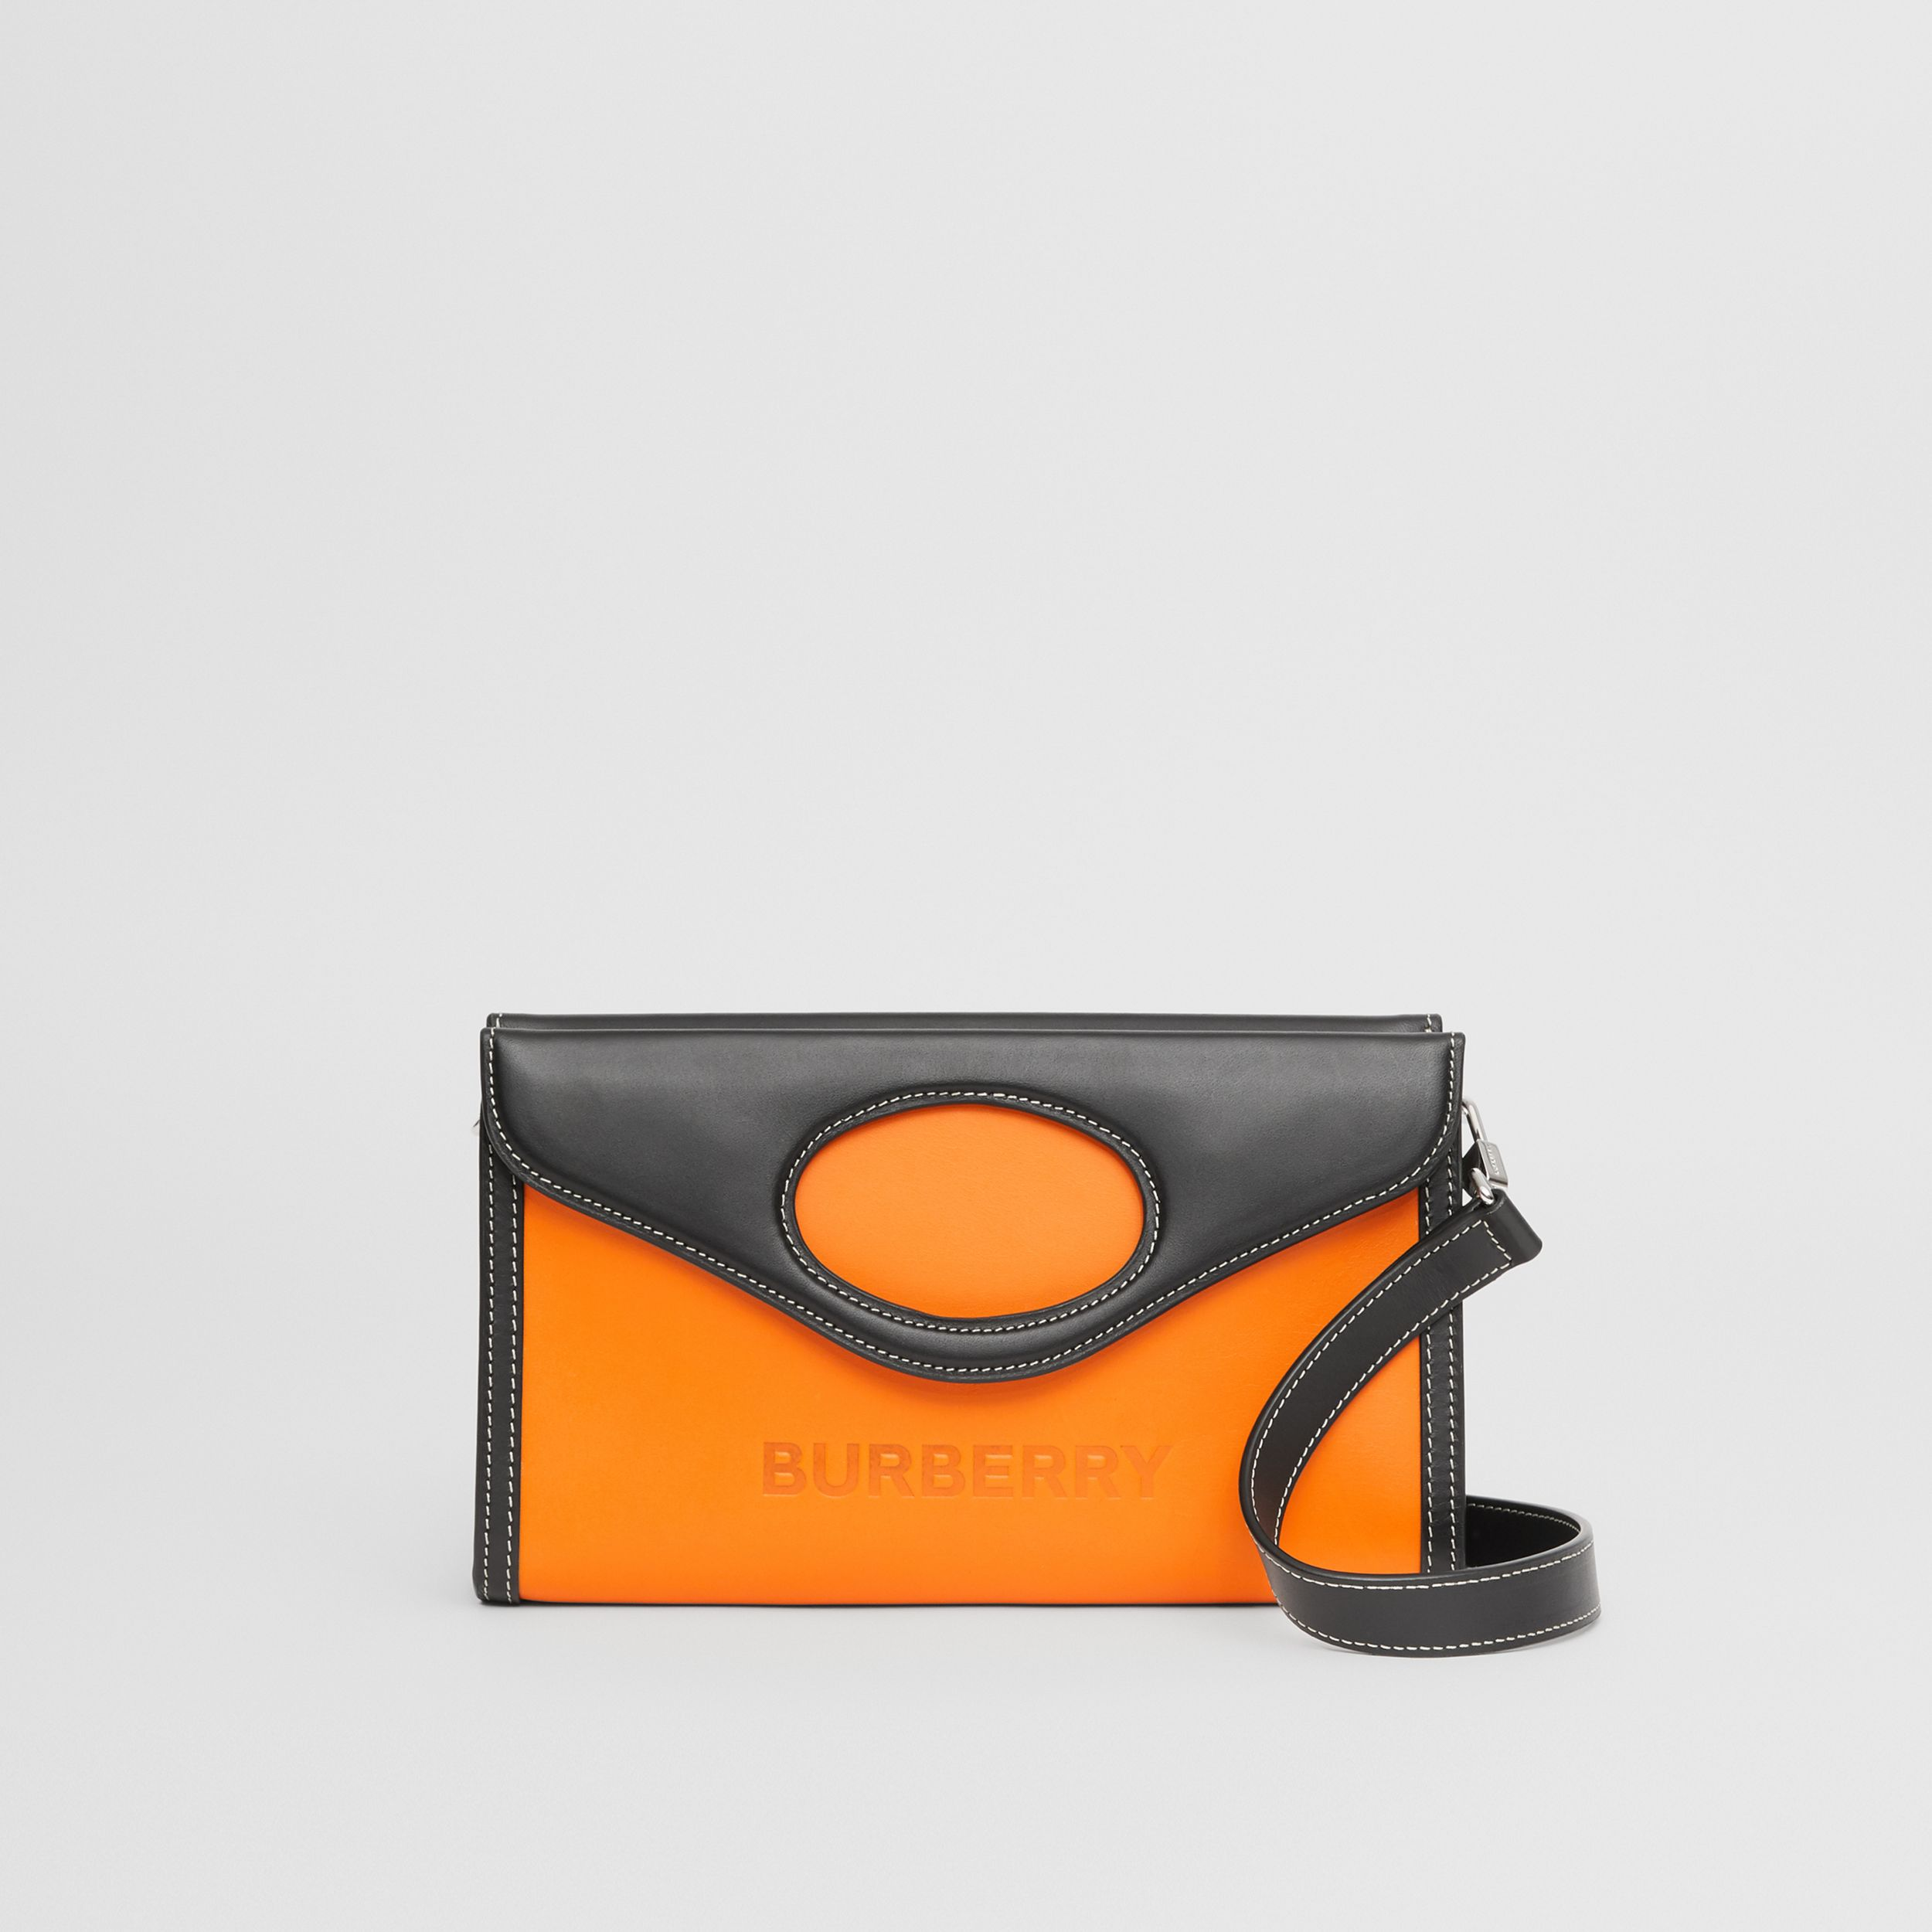 Two-tone Leather Foldover Pocket Bag in Deep Orange/black - Men | Burberry Australia - 1